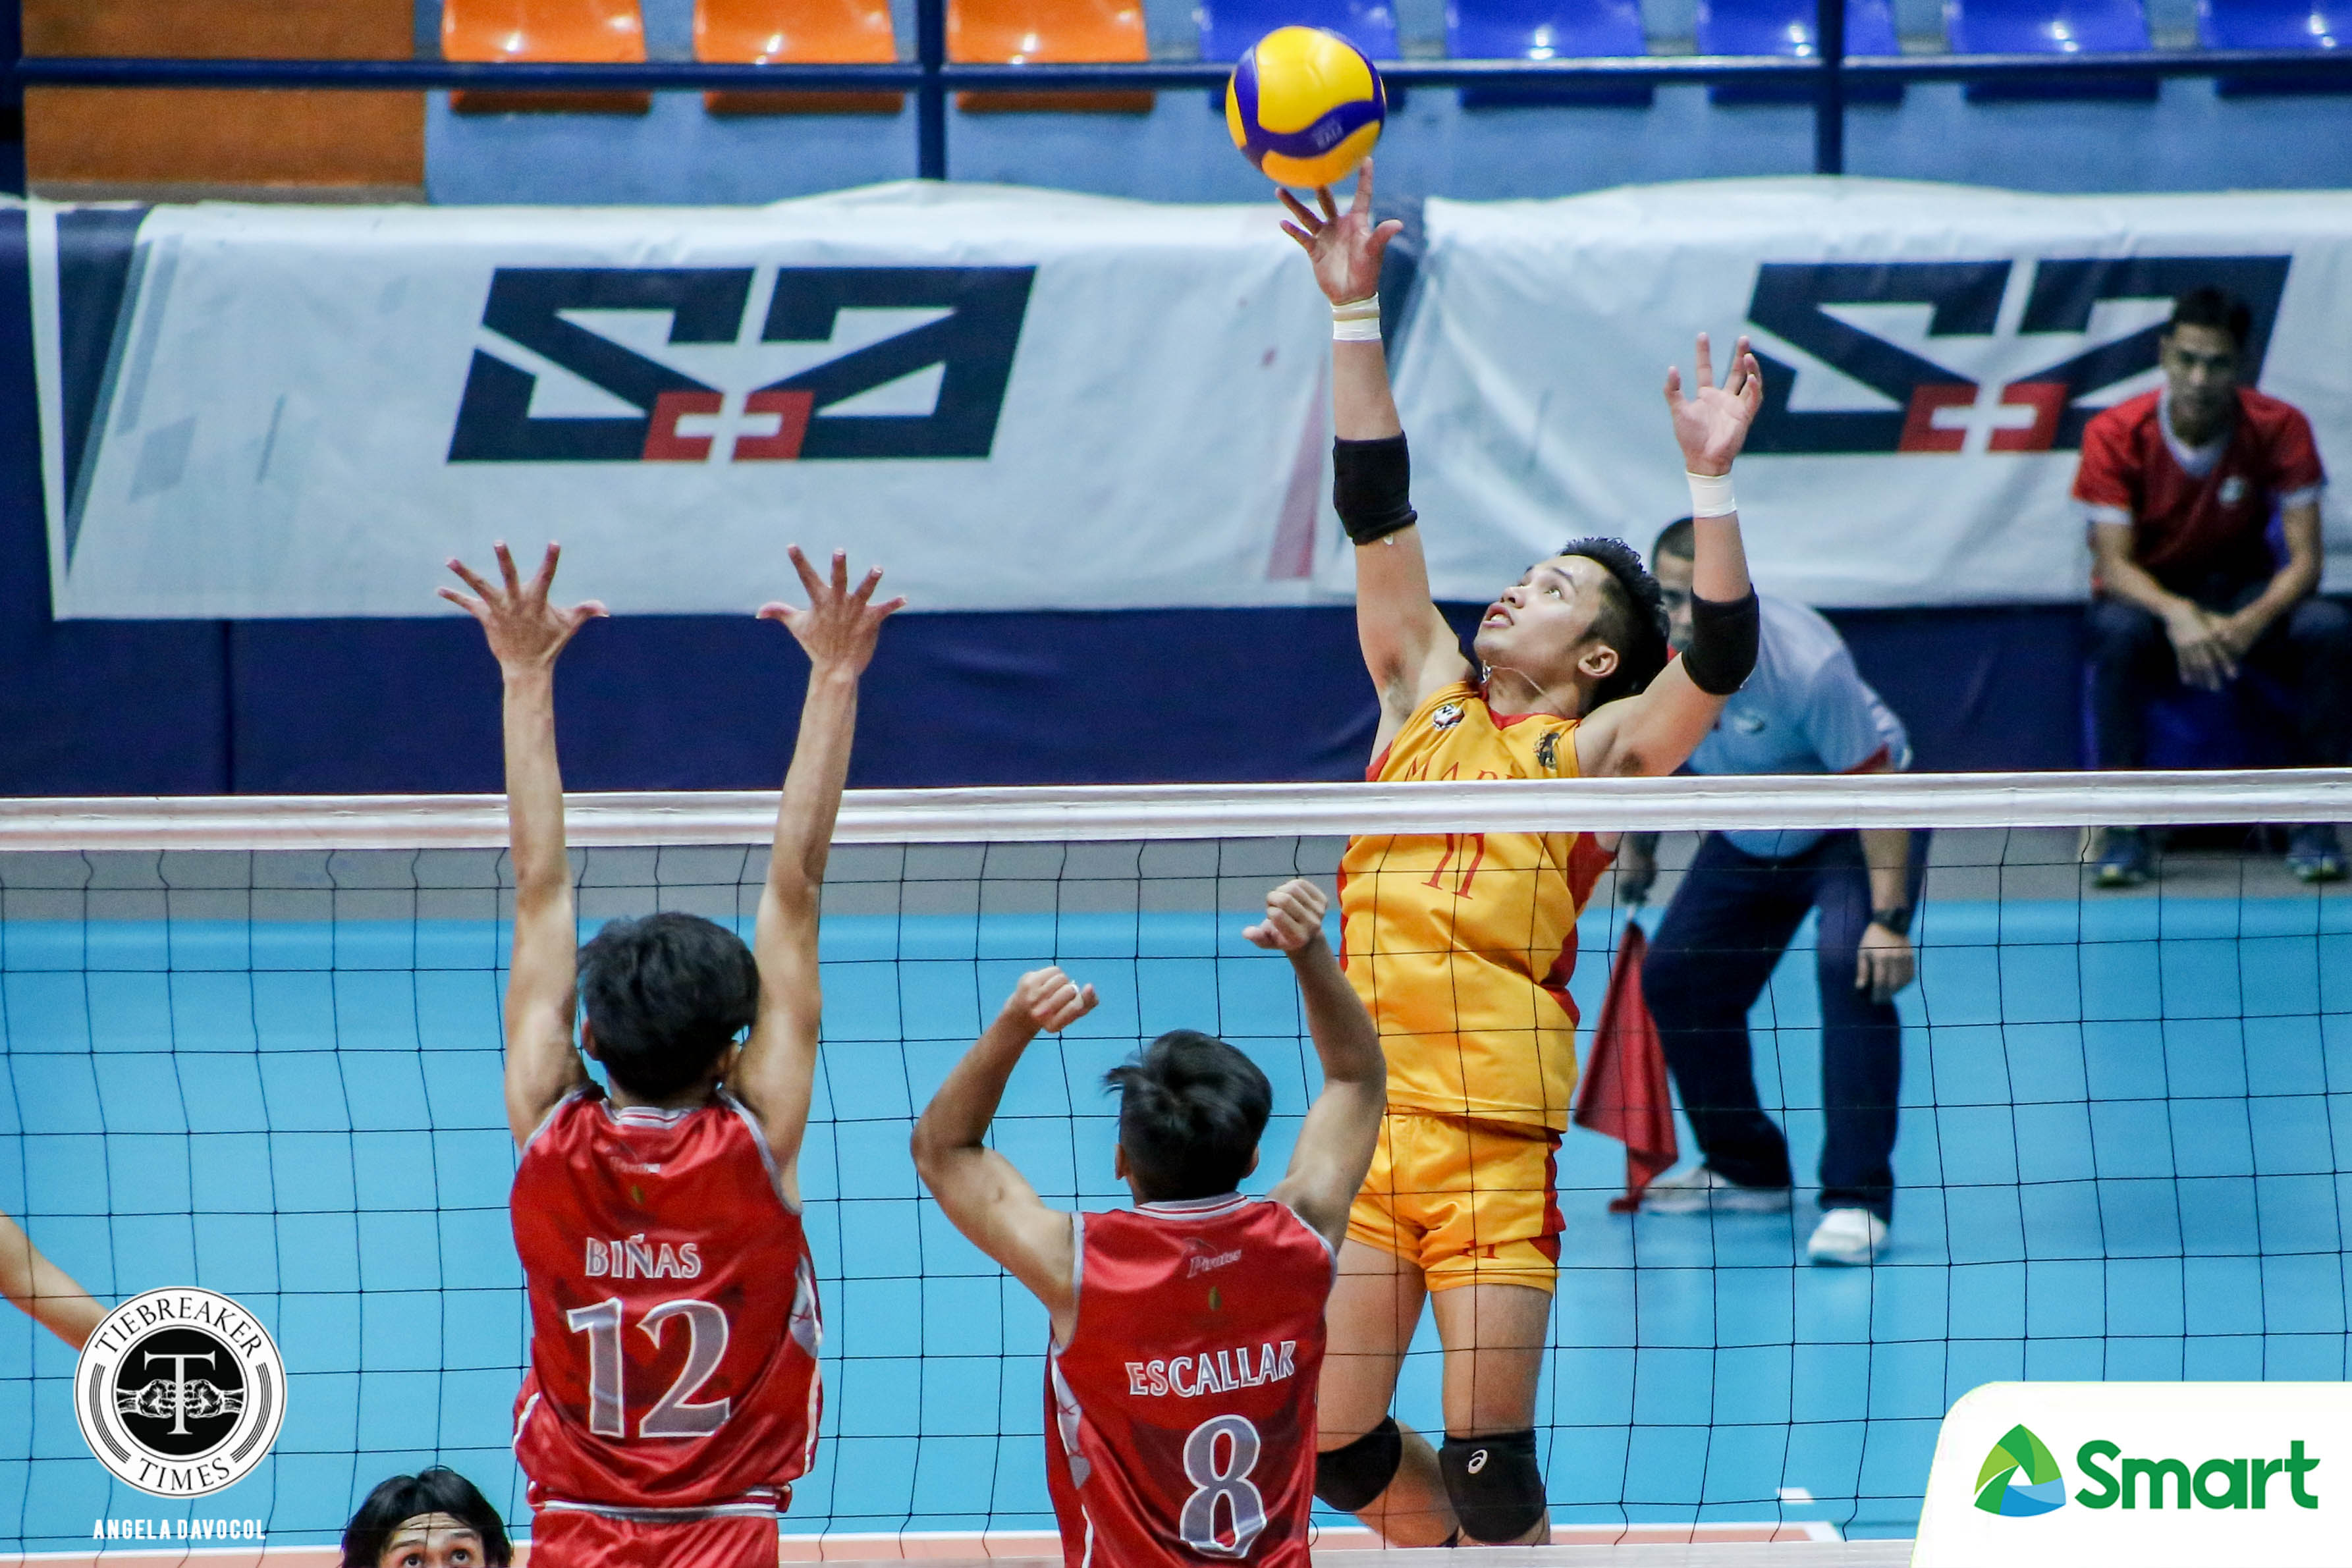 Tiebreaker Times Mapua Cardinals soar past Lyceum for fourth straight NCAA 95 win LPU MIT NCAA News Volleyball  Raje Hizon Paul John Doloiras NCAA Season 95 Men's Volleyball NCAA Season 95 Mapua Men's Volleyball Lyceum Men's Volleyball Karl Tabios Juvic Colonia John Silva John Benedict San Andres Emil Lontoc Deon Colorado Alfredo Pagulong